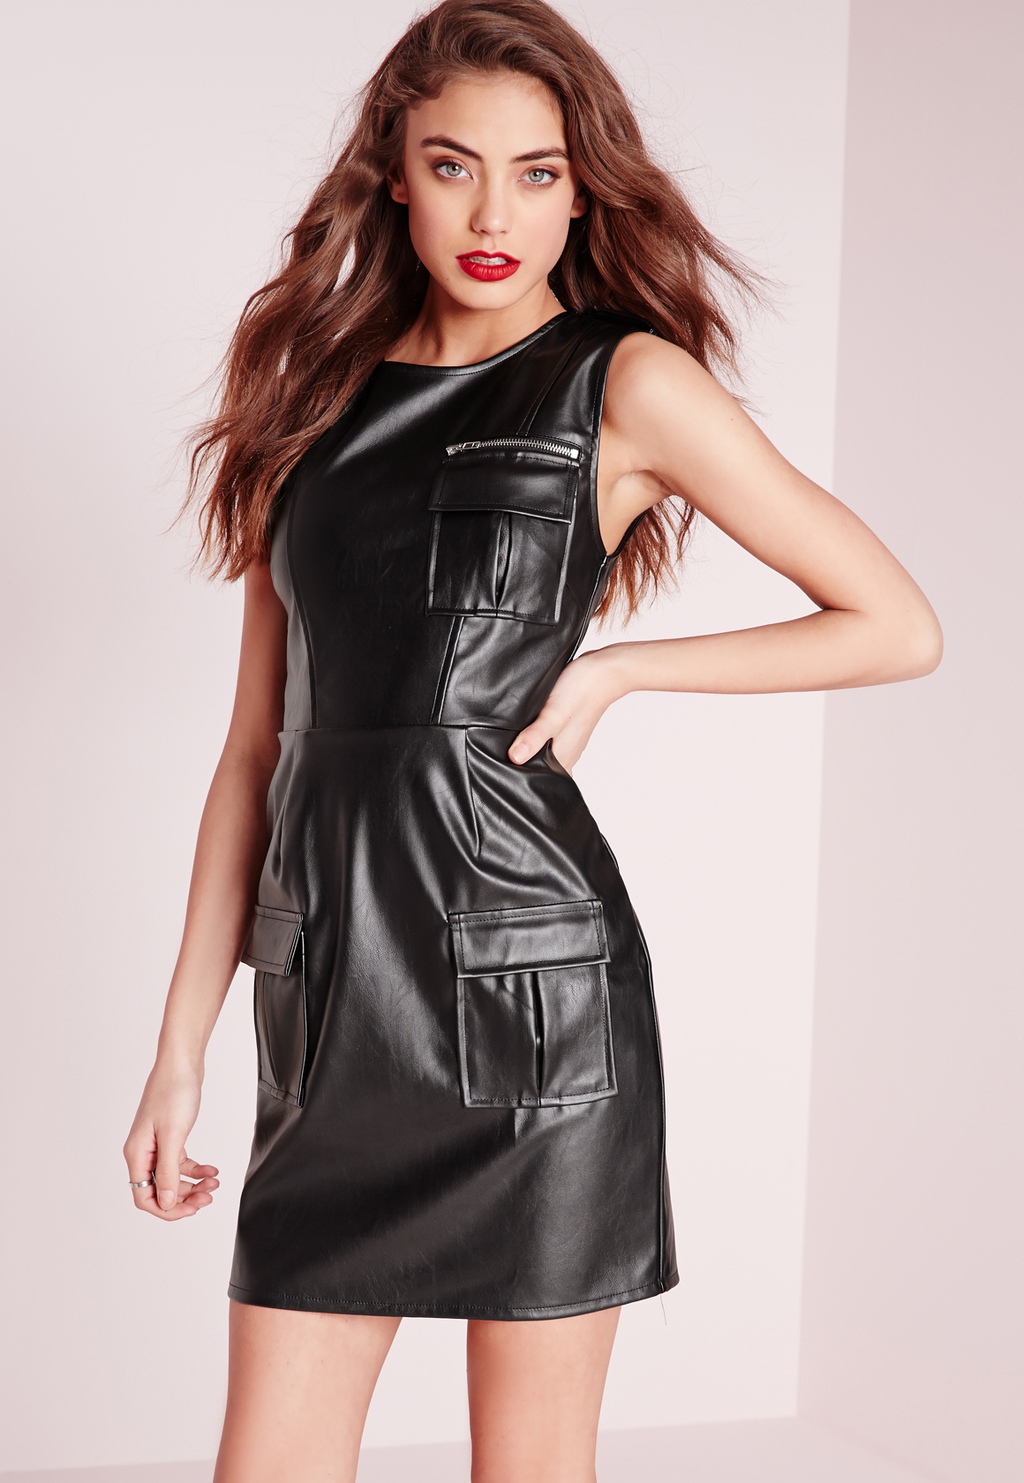 Sleeveless Pu Pocket Front Bodycon Dress Black, Black - style: shift; length: mid thigh; pattern: plain; sleeve style: sleeveless; predominant colour: black; occasions: evening; fit: body skimming; neckline: crew; sleeve length: sleeveless; texture group: leather; pattern type: fabric; fibres: pvc/polyurethene - 100%; season: s/s 2016; wardrobe: event